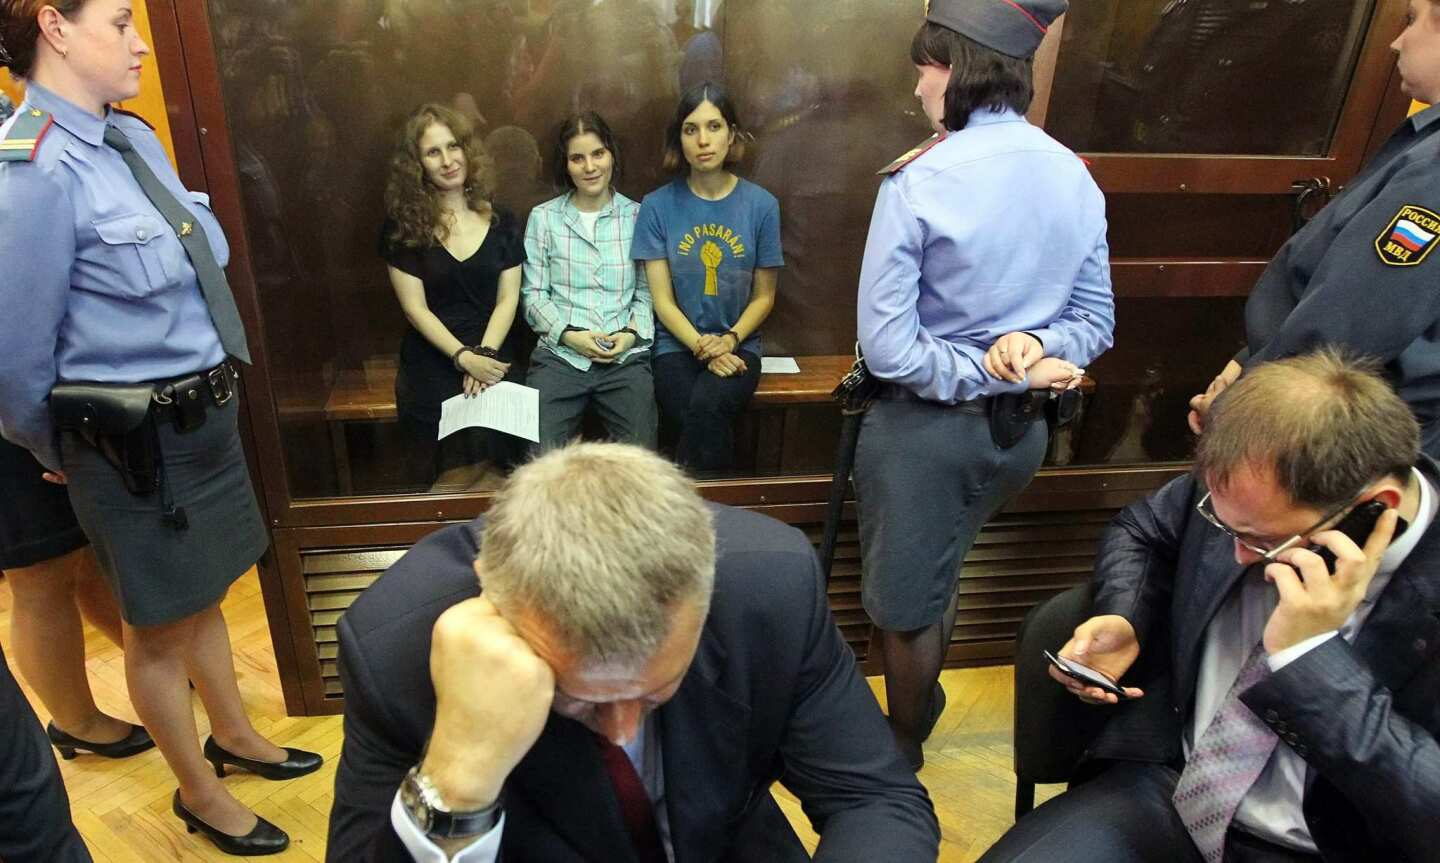 Russian feminist punk-rock band Pussy Riot members Maria Alyokhina, left, Yekaterina Samutsevich and Nadezhda Tolokonnikova sit in a glass-walled cage in a courtroom after the judge delivered the verdict at the Khamovnichesky Court in Moscow. Judge Marina Syrova sentenced the trio, who were found guilty of hooliganism motivated by religious hatred or hostility after singing a song insulting Vladimir Putin in the Christ the Savior Cathedral in Moscow earlier this year ahead of presidential elections in Russia, to two years in prison.